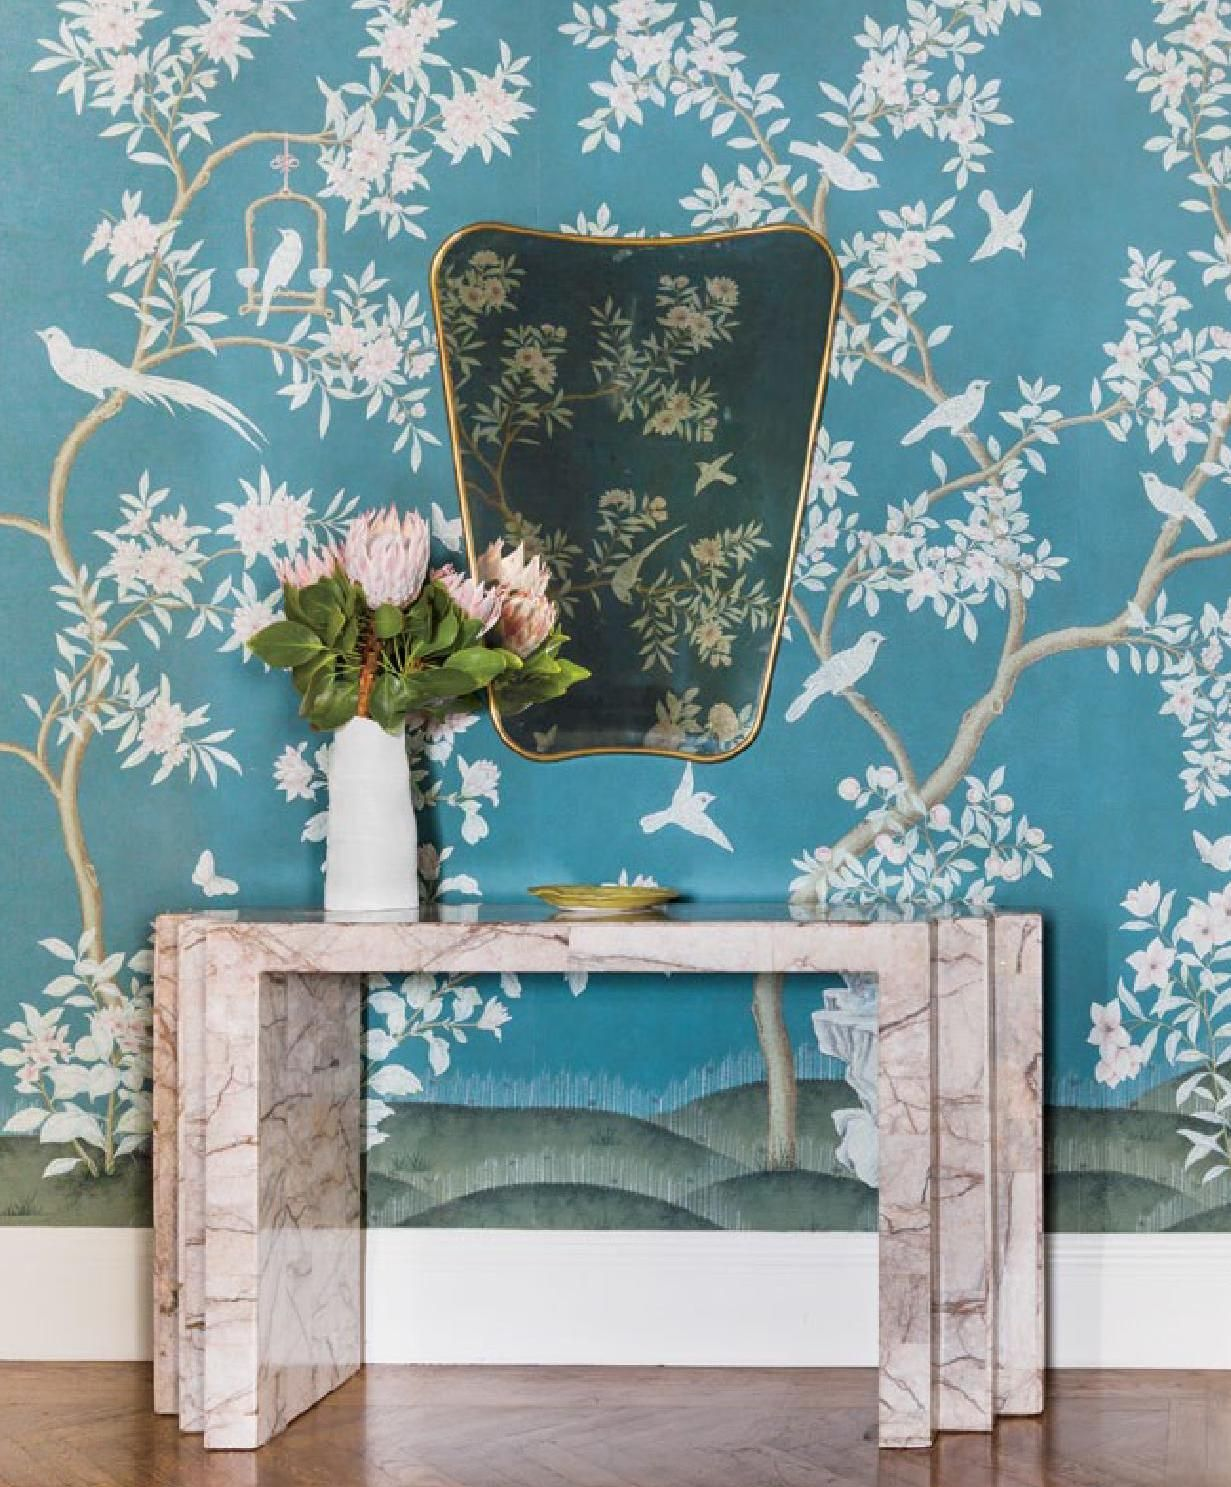 Blue Flower Wallpaper with Unique Gold Mirror and Console Table